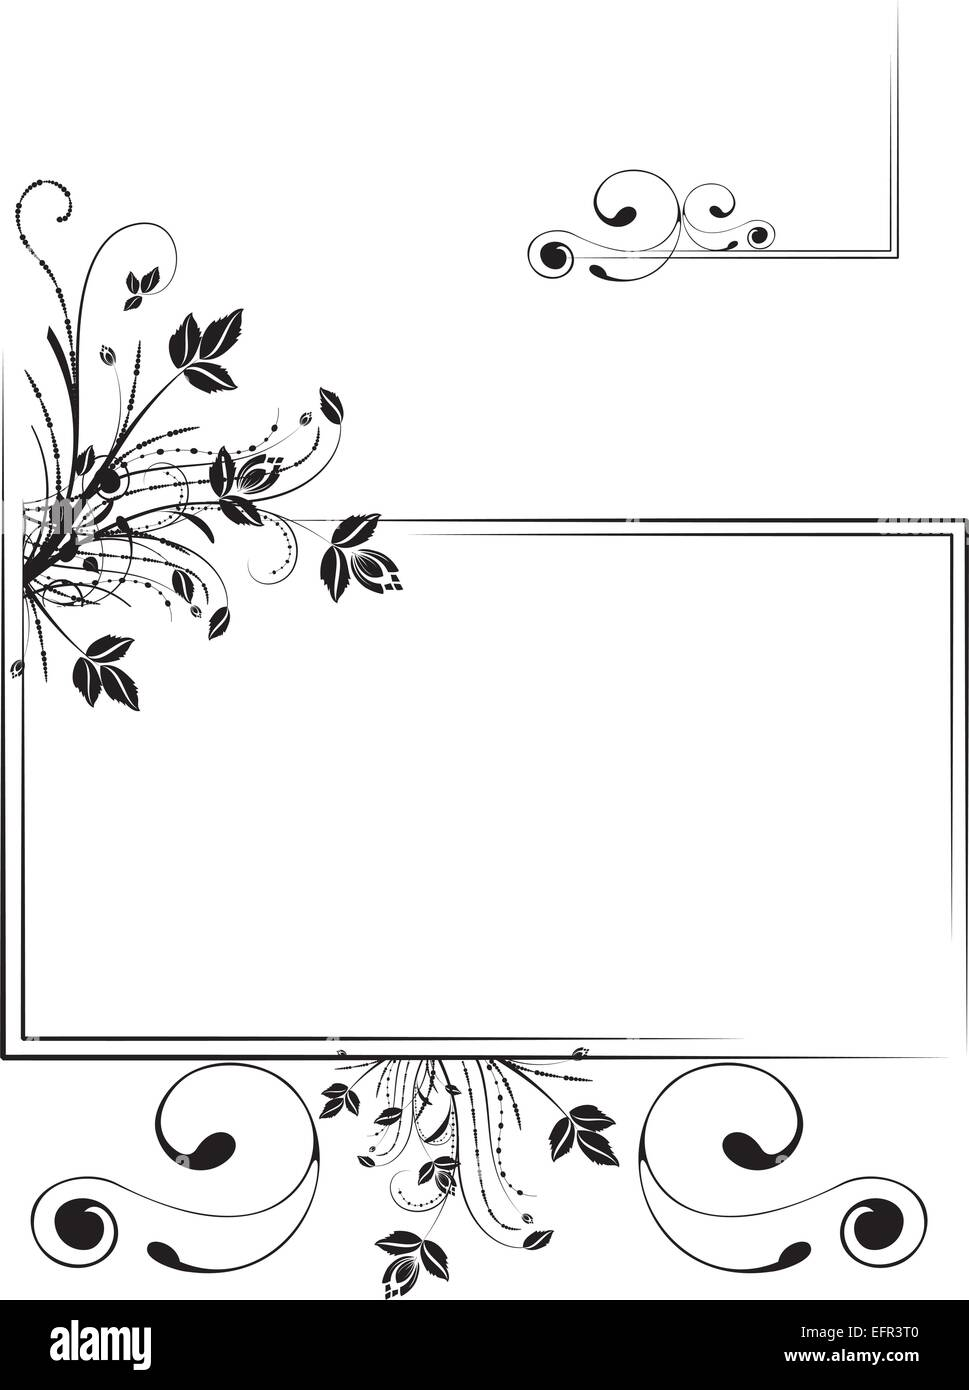 Monochrome floral scrap-booking frame, vector illustration - Stock Image